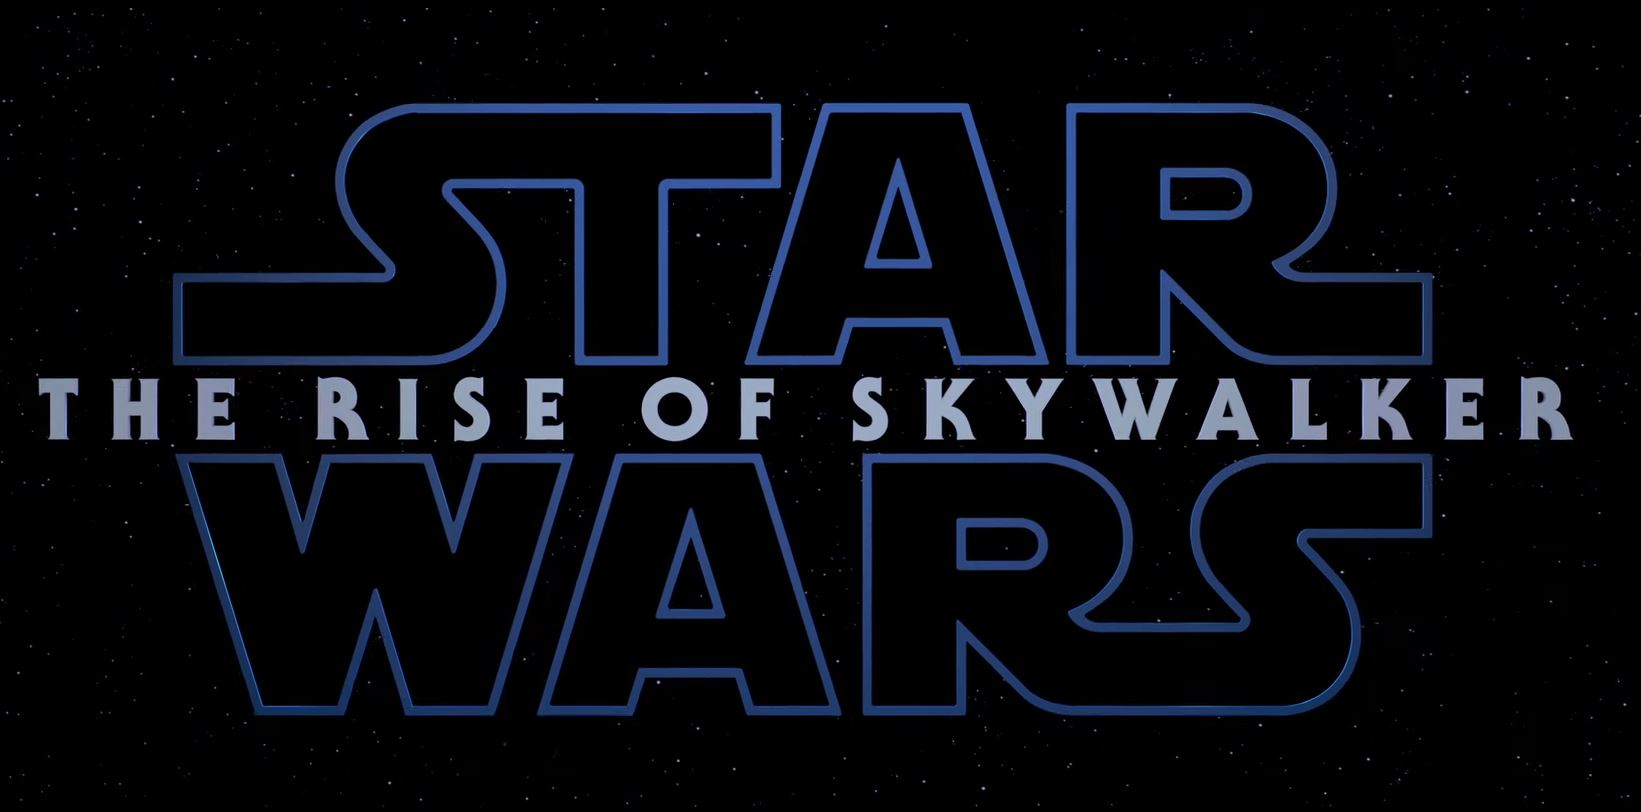 Star Wars Episode 9 has officially been given a title